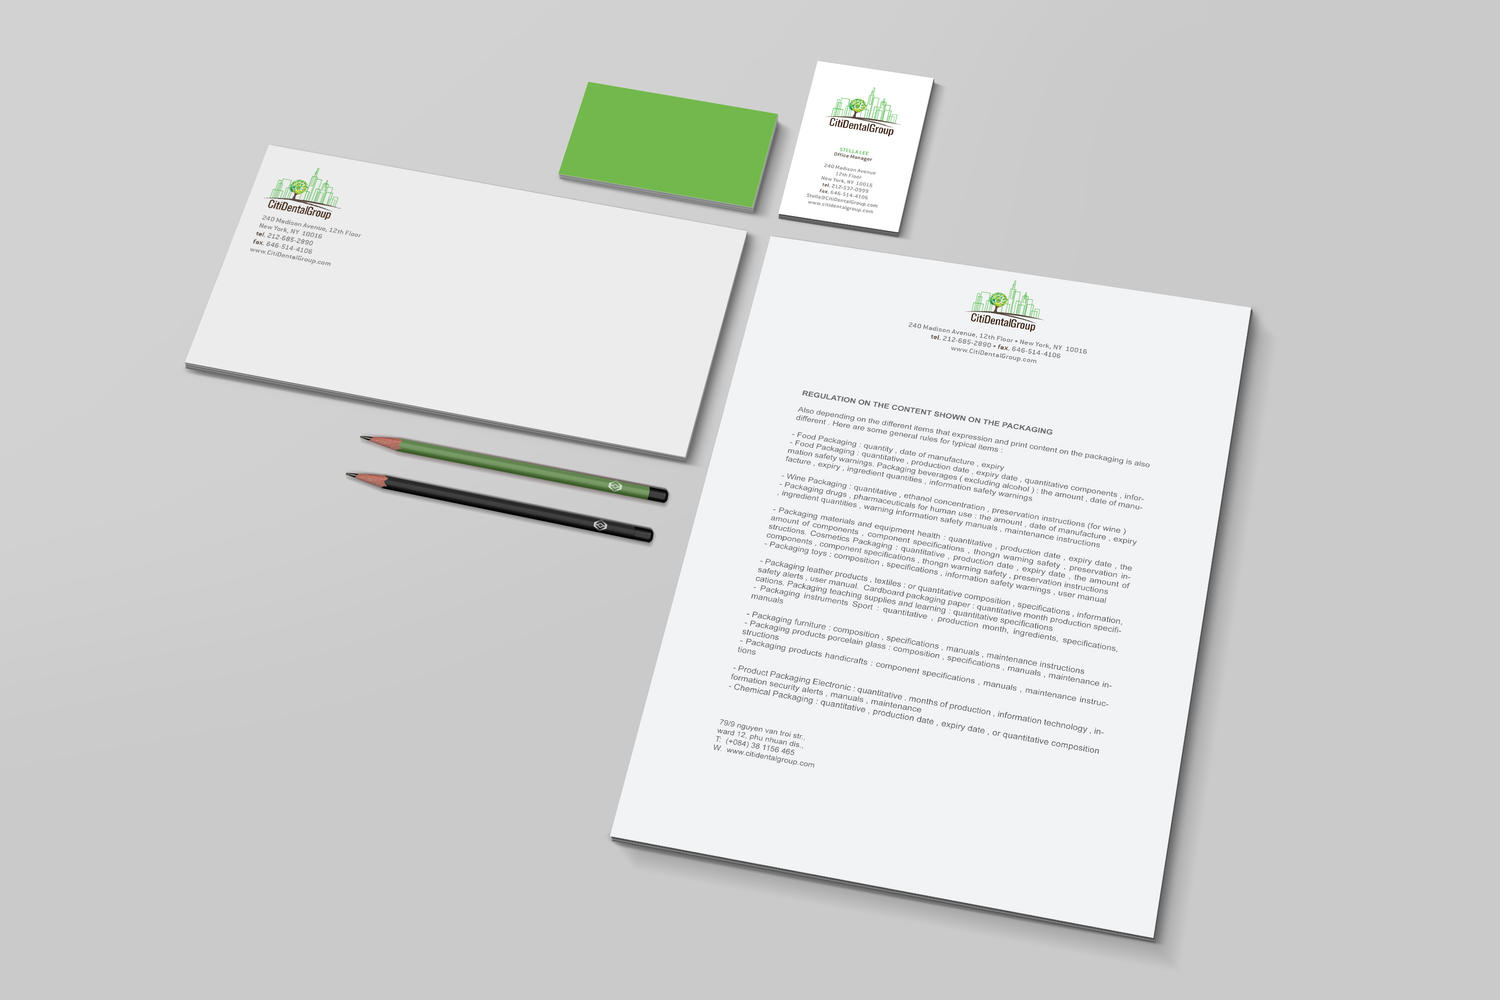 Professional Branding Design by madridnyc - 34361